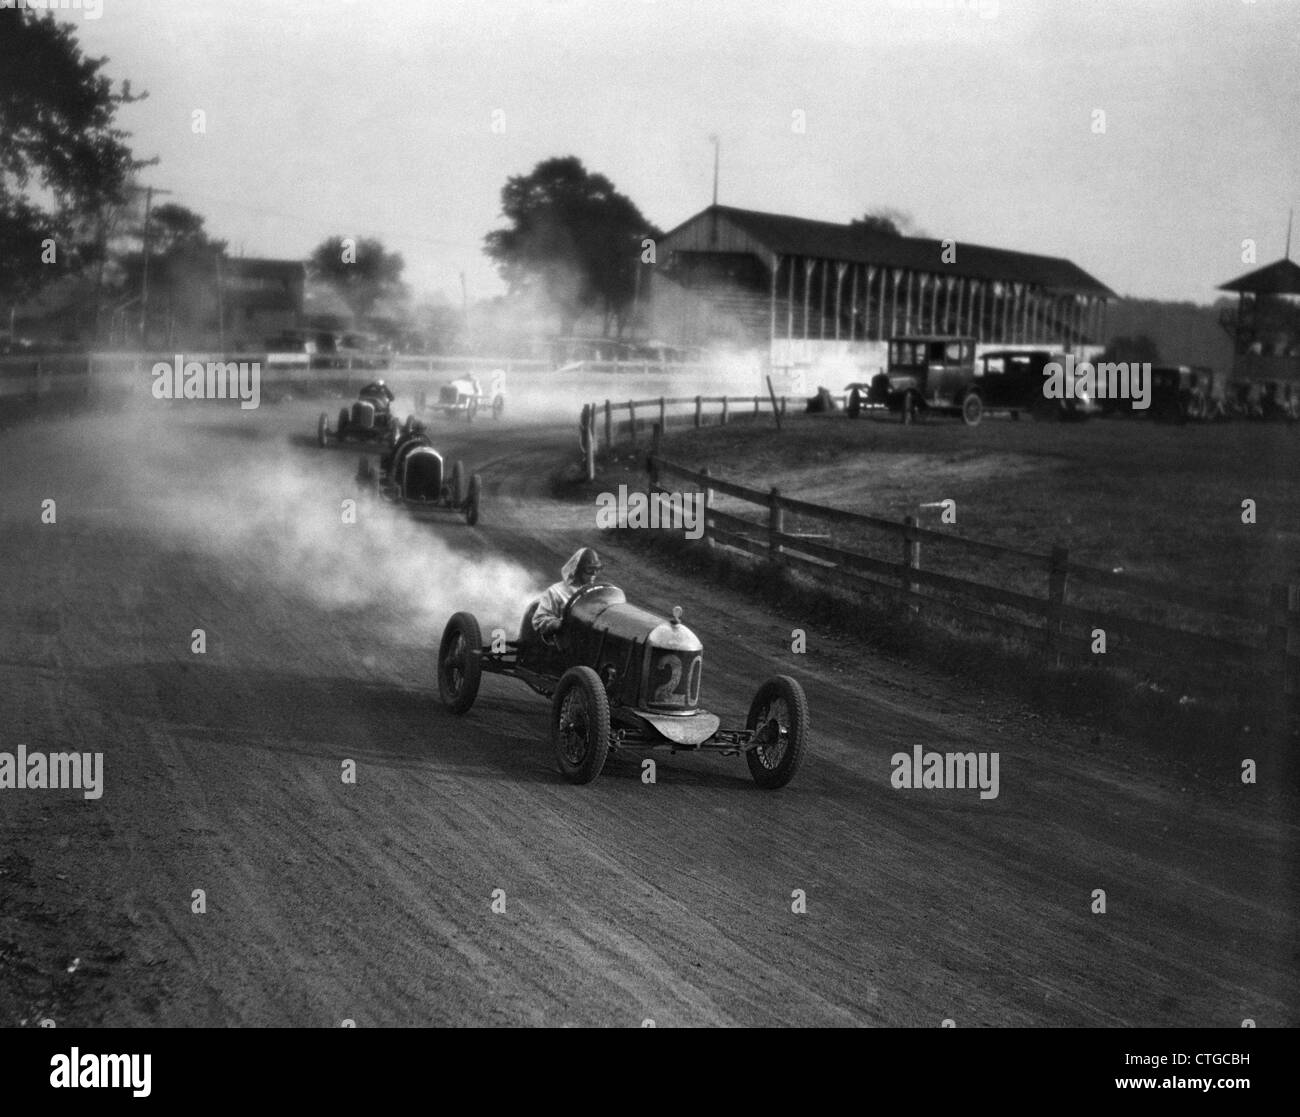 1930s Racing Cars Stock Photos & 1930s Racing Cars Stock